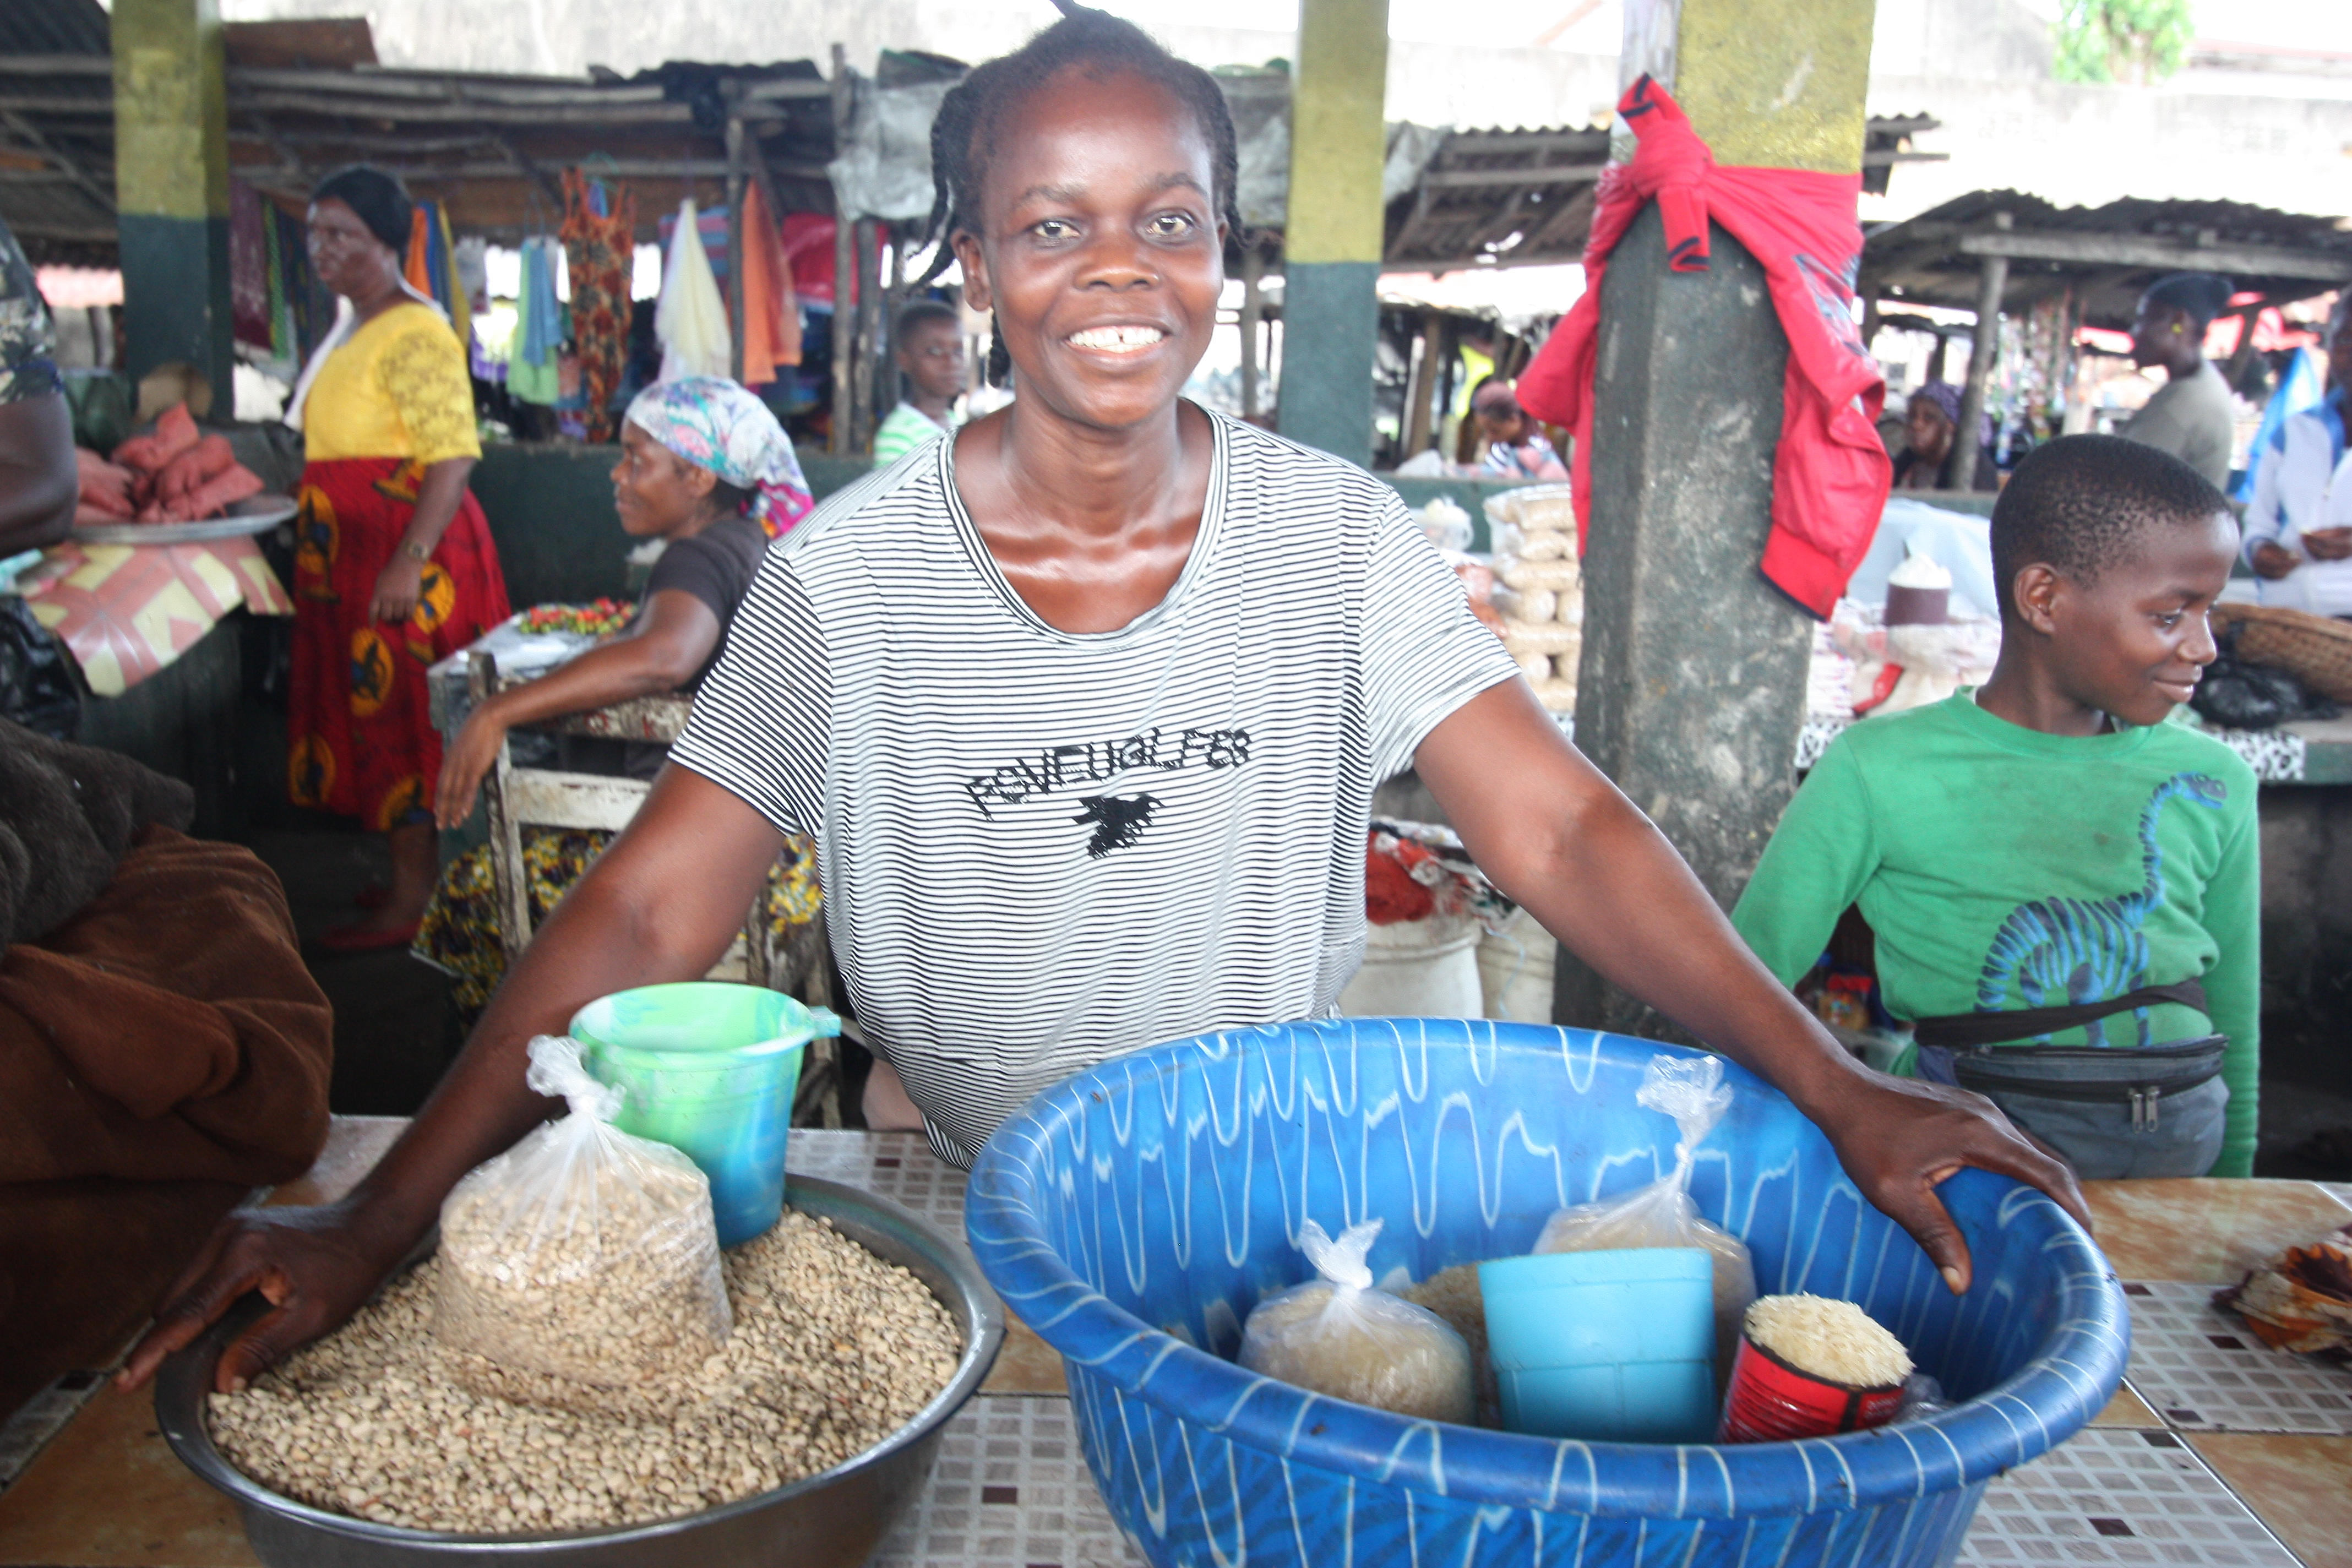 woman selling rice in market in Liberia